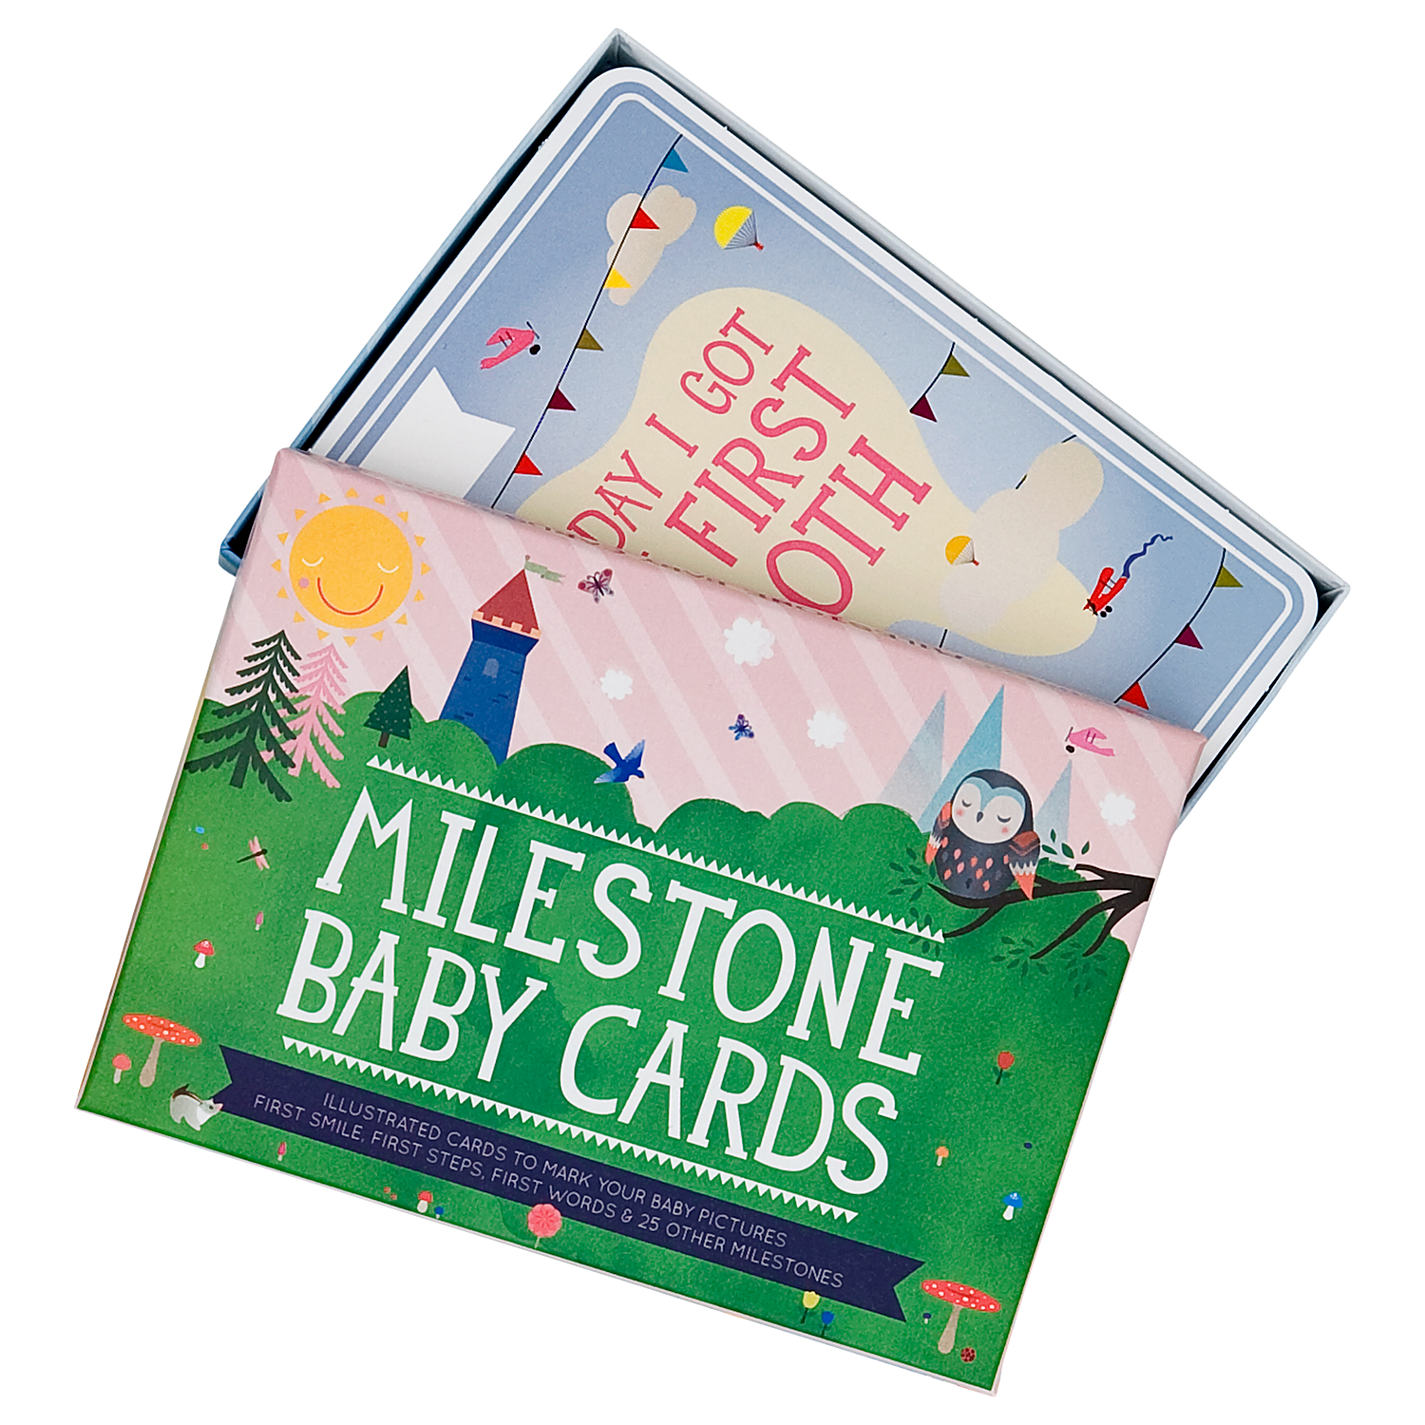 Milestone gifts for new parents john lewis buy milestone baby cards set pack of 30 online at johnlewis negle Image collections